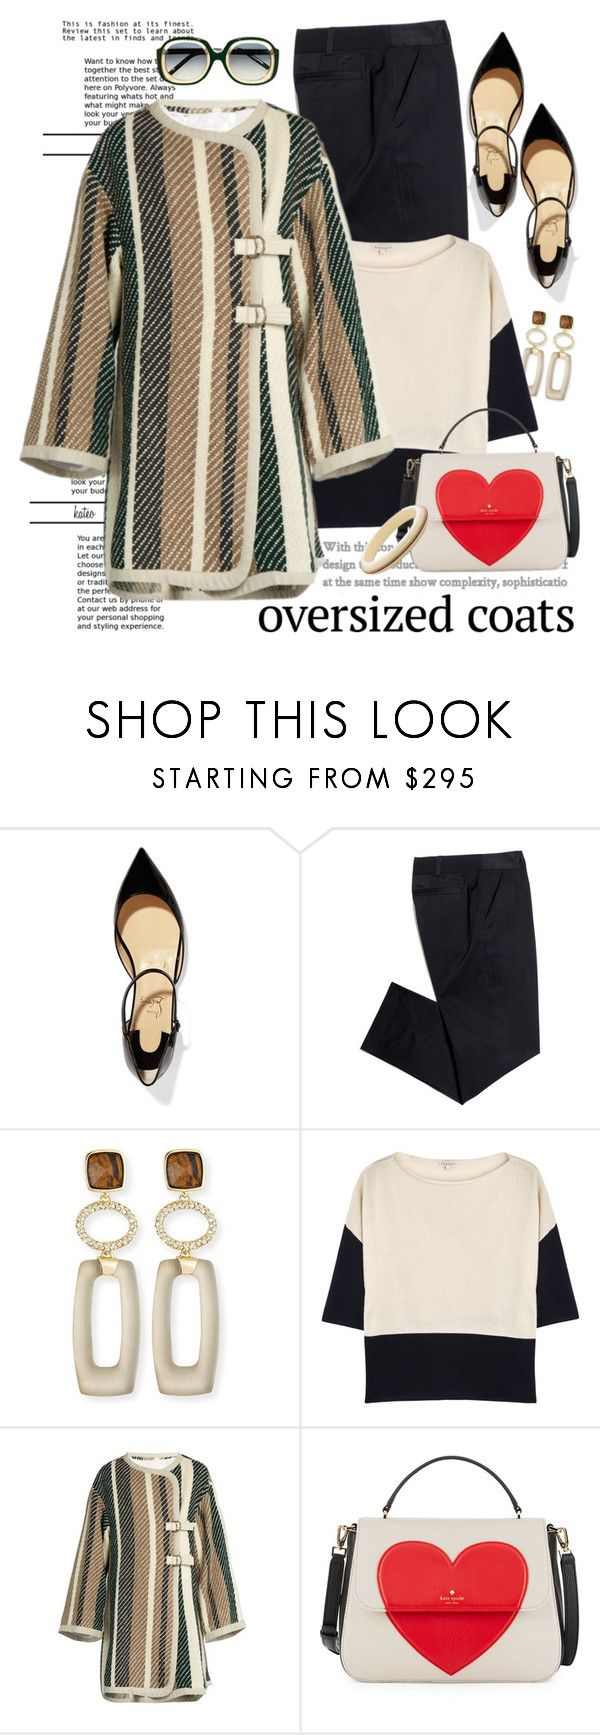 """""""Sometimes Bigger """"is"""" Better !!"""" by kateo ❤ liked on Polyvore featuring Christian Louboutin, Tory Burch, Alexis Bittar, Demylee, See by Chloé, Kate Spade, Marni, oversizedcoats and 6411"""